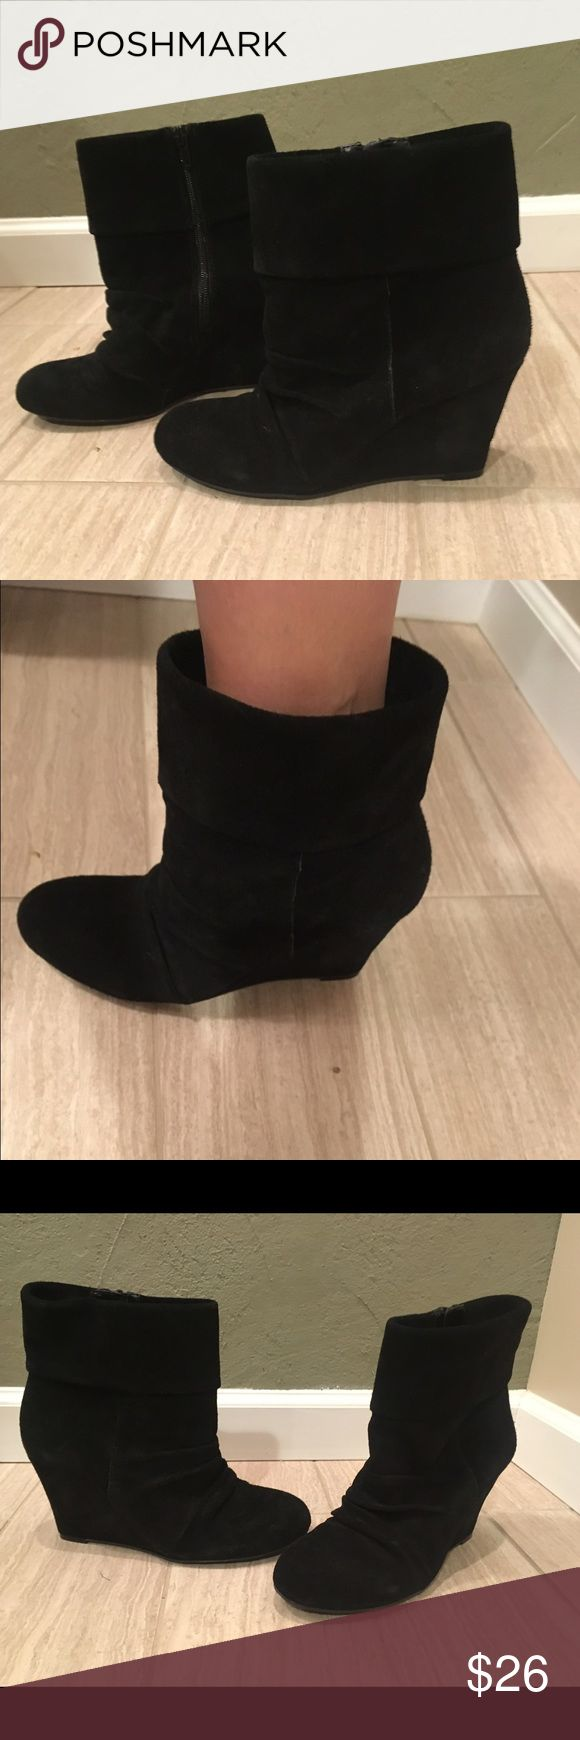 EUC-Women's INC Black Ankle Wedge Suede Boots-7.5 EUC-Women's INC International Concepts Black Suede Wedge Boots-Size 7.5.  Only worn a few times.  Cute booties with skinny jeans or dresses!  Item comes from a smoke free and pet free home! Priced to Sell! Make REASONABLE OFFERS! INC International Concepts Shoes Ankle Boots & Booties